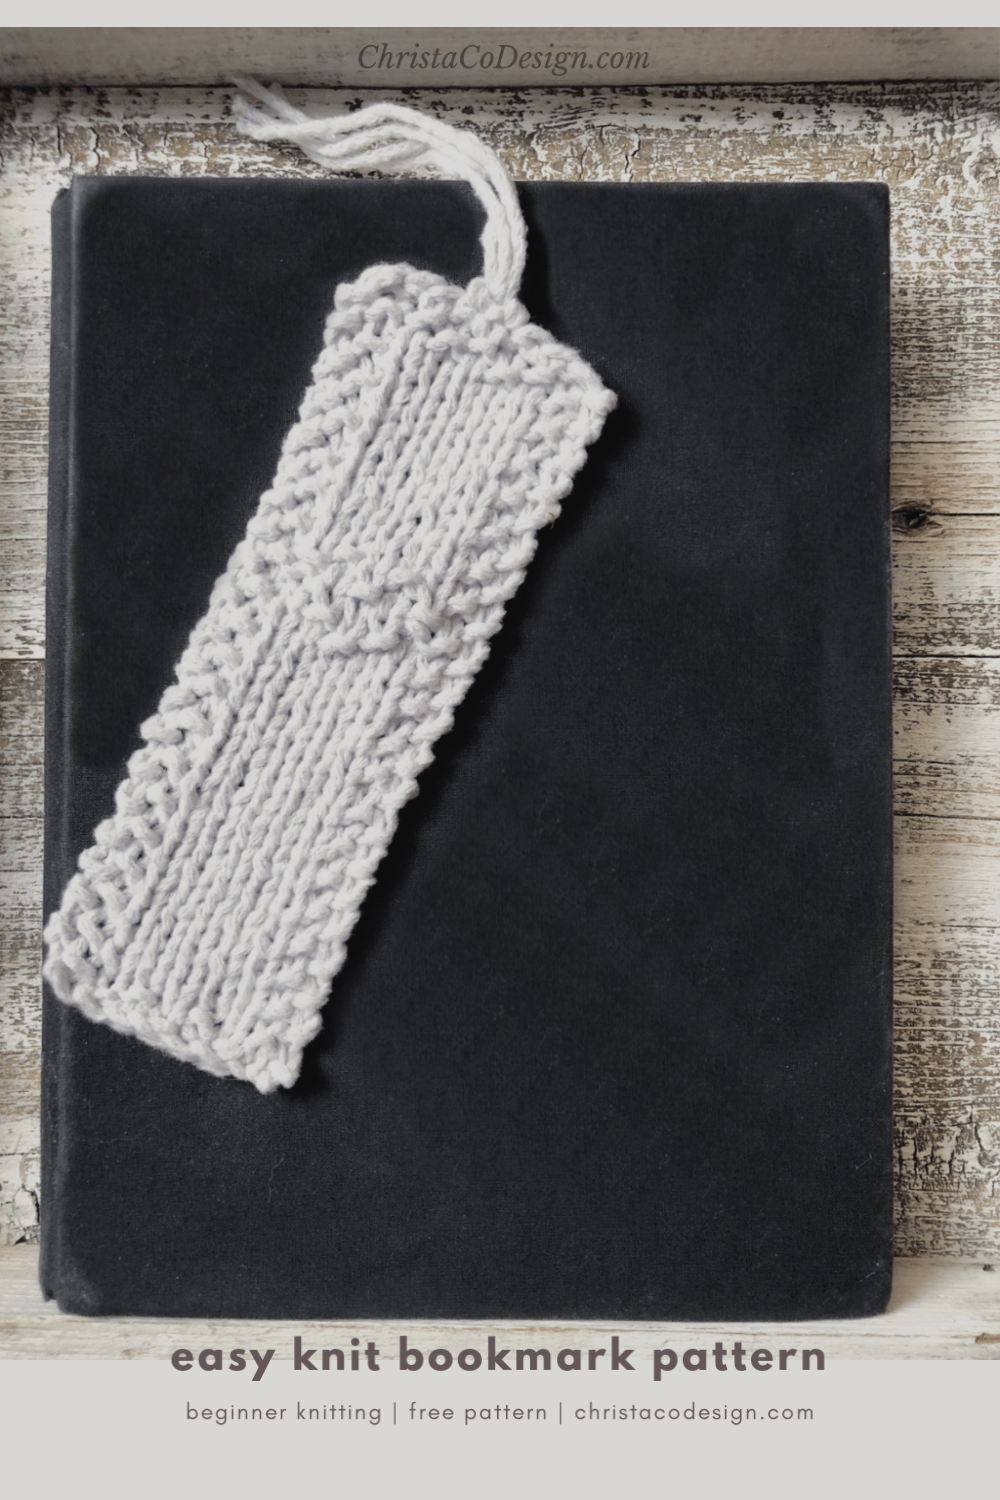 picture with text of white knitted bookmark on black book